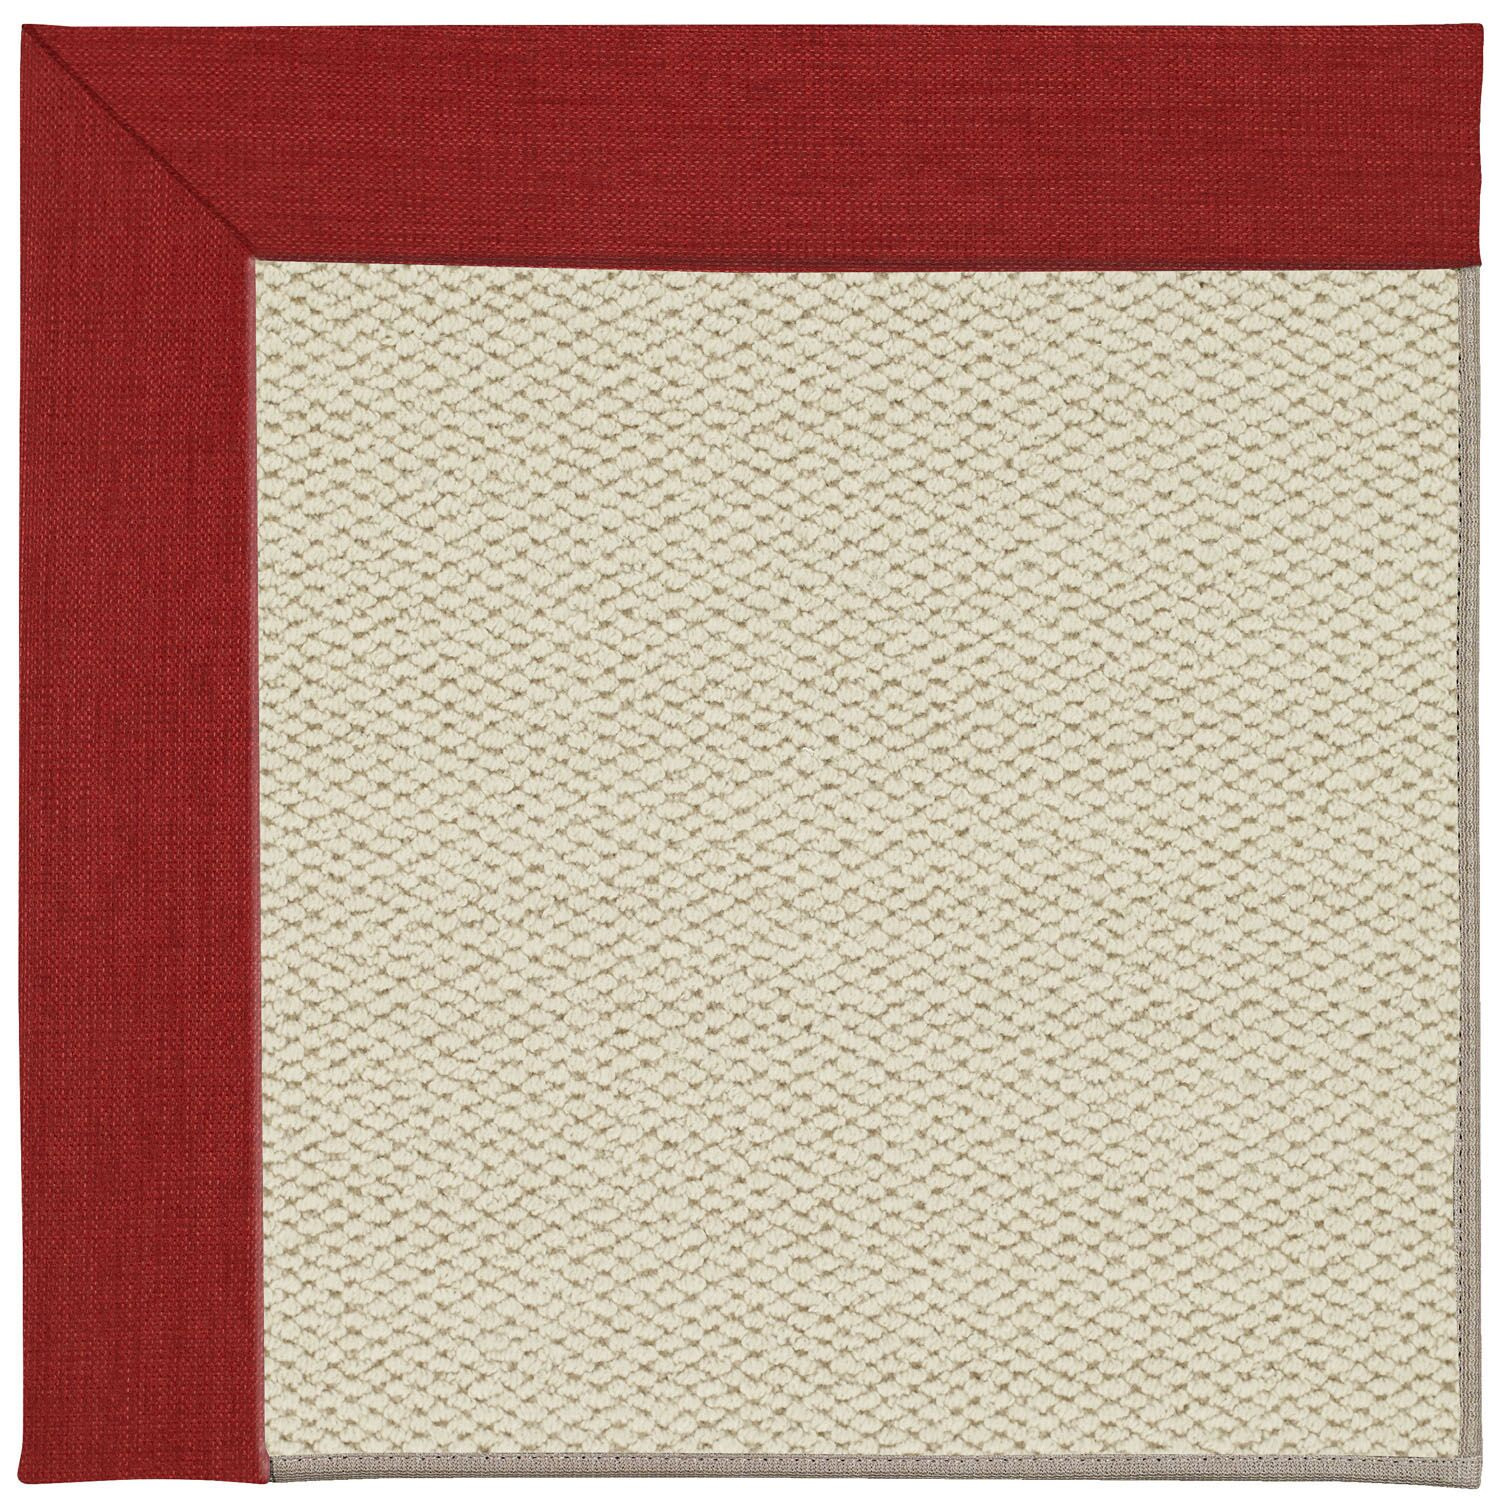 Barrett Linen Machine Tufted Red/Yellow Area Rug Rug Size: Rectangle 5' x 8'